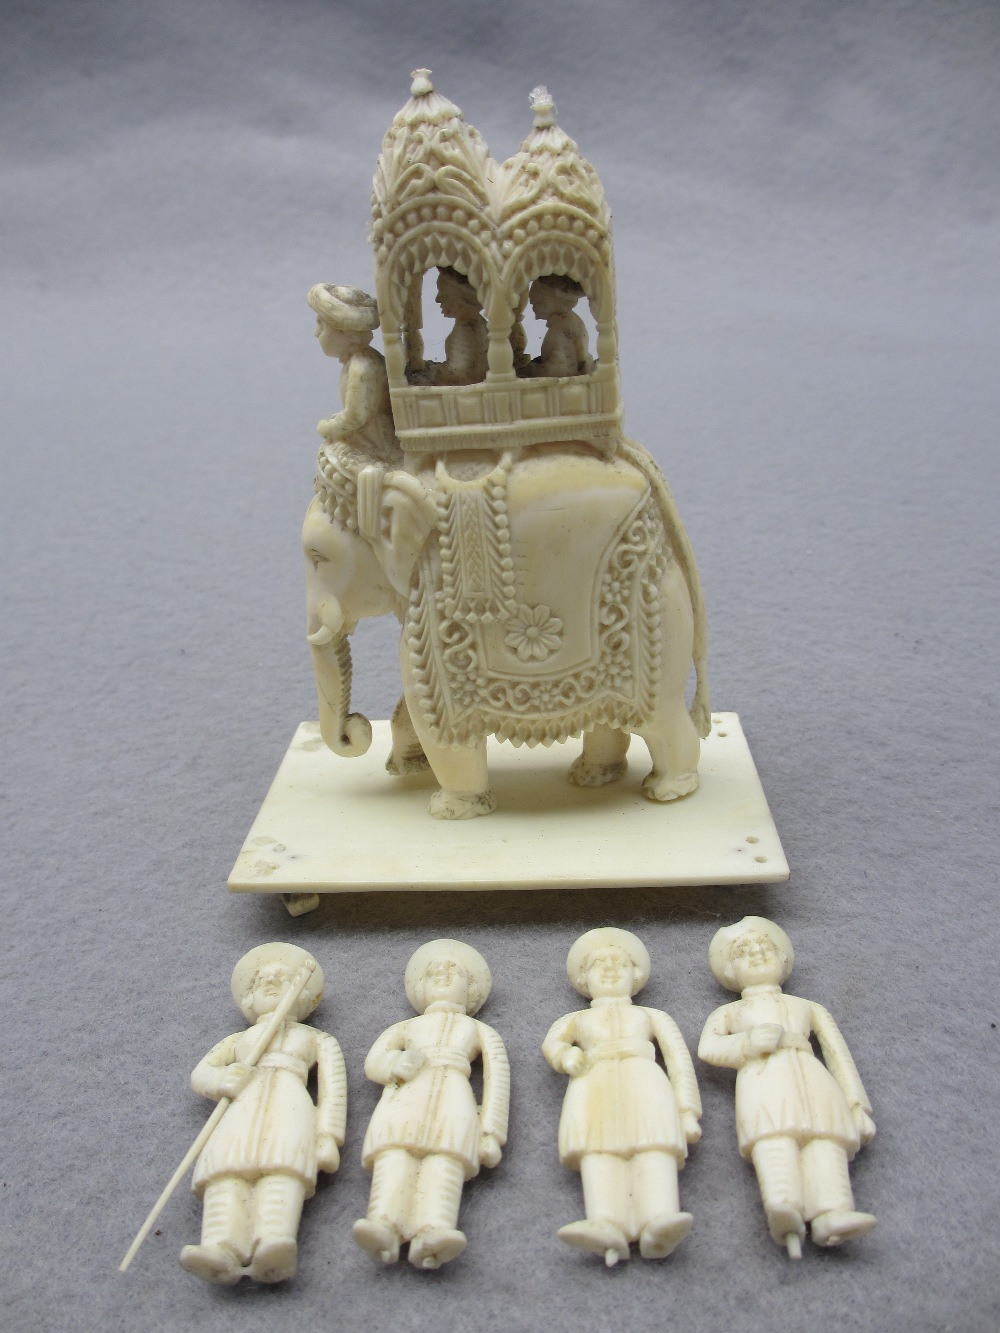 LATE 19TH/EARLY 20TH CENTURY ANGLO INDIAN IVORY/BONE CARVINGS - an elephant with palanquin on a - Image 2 of 5